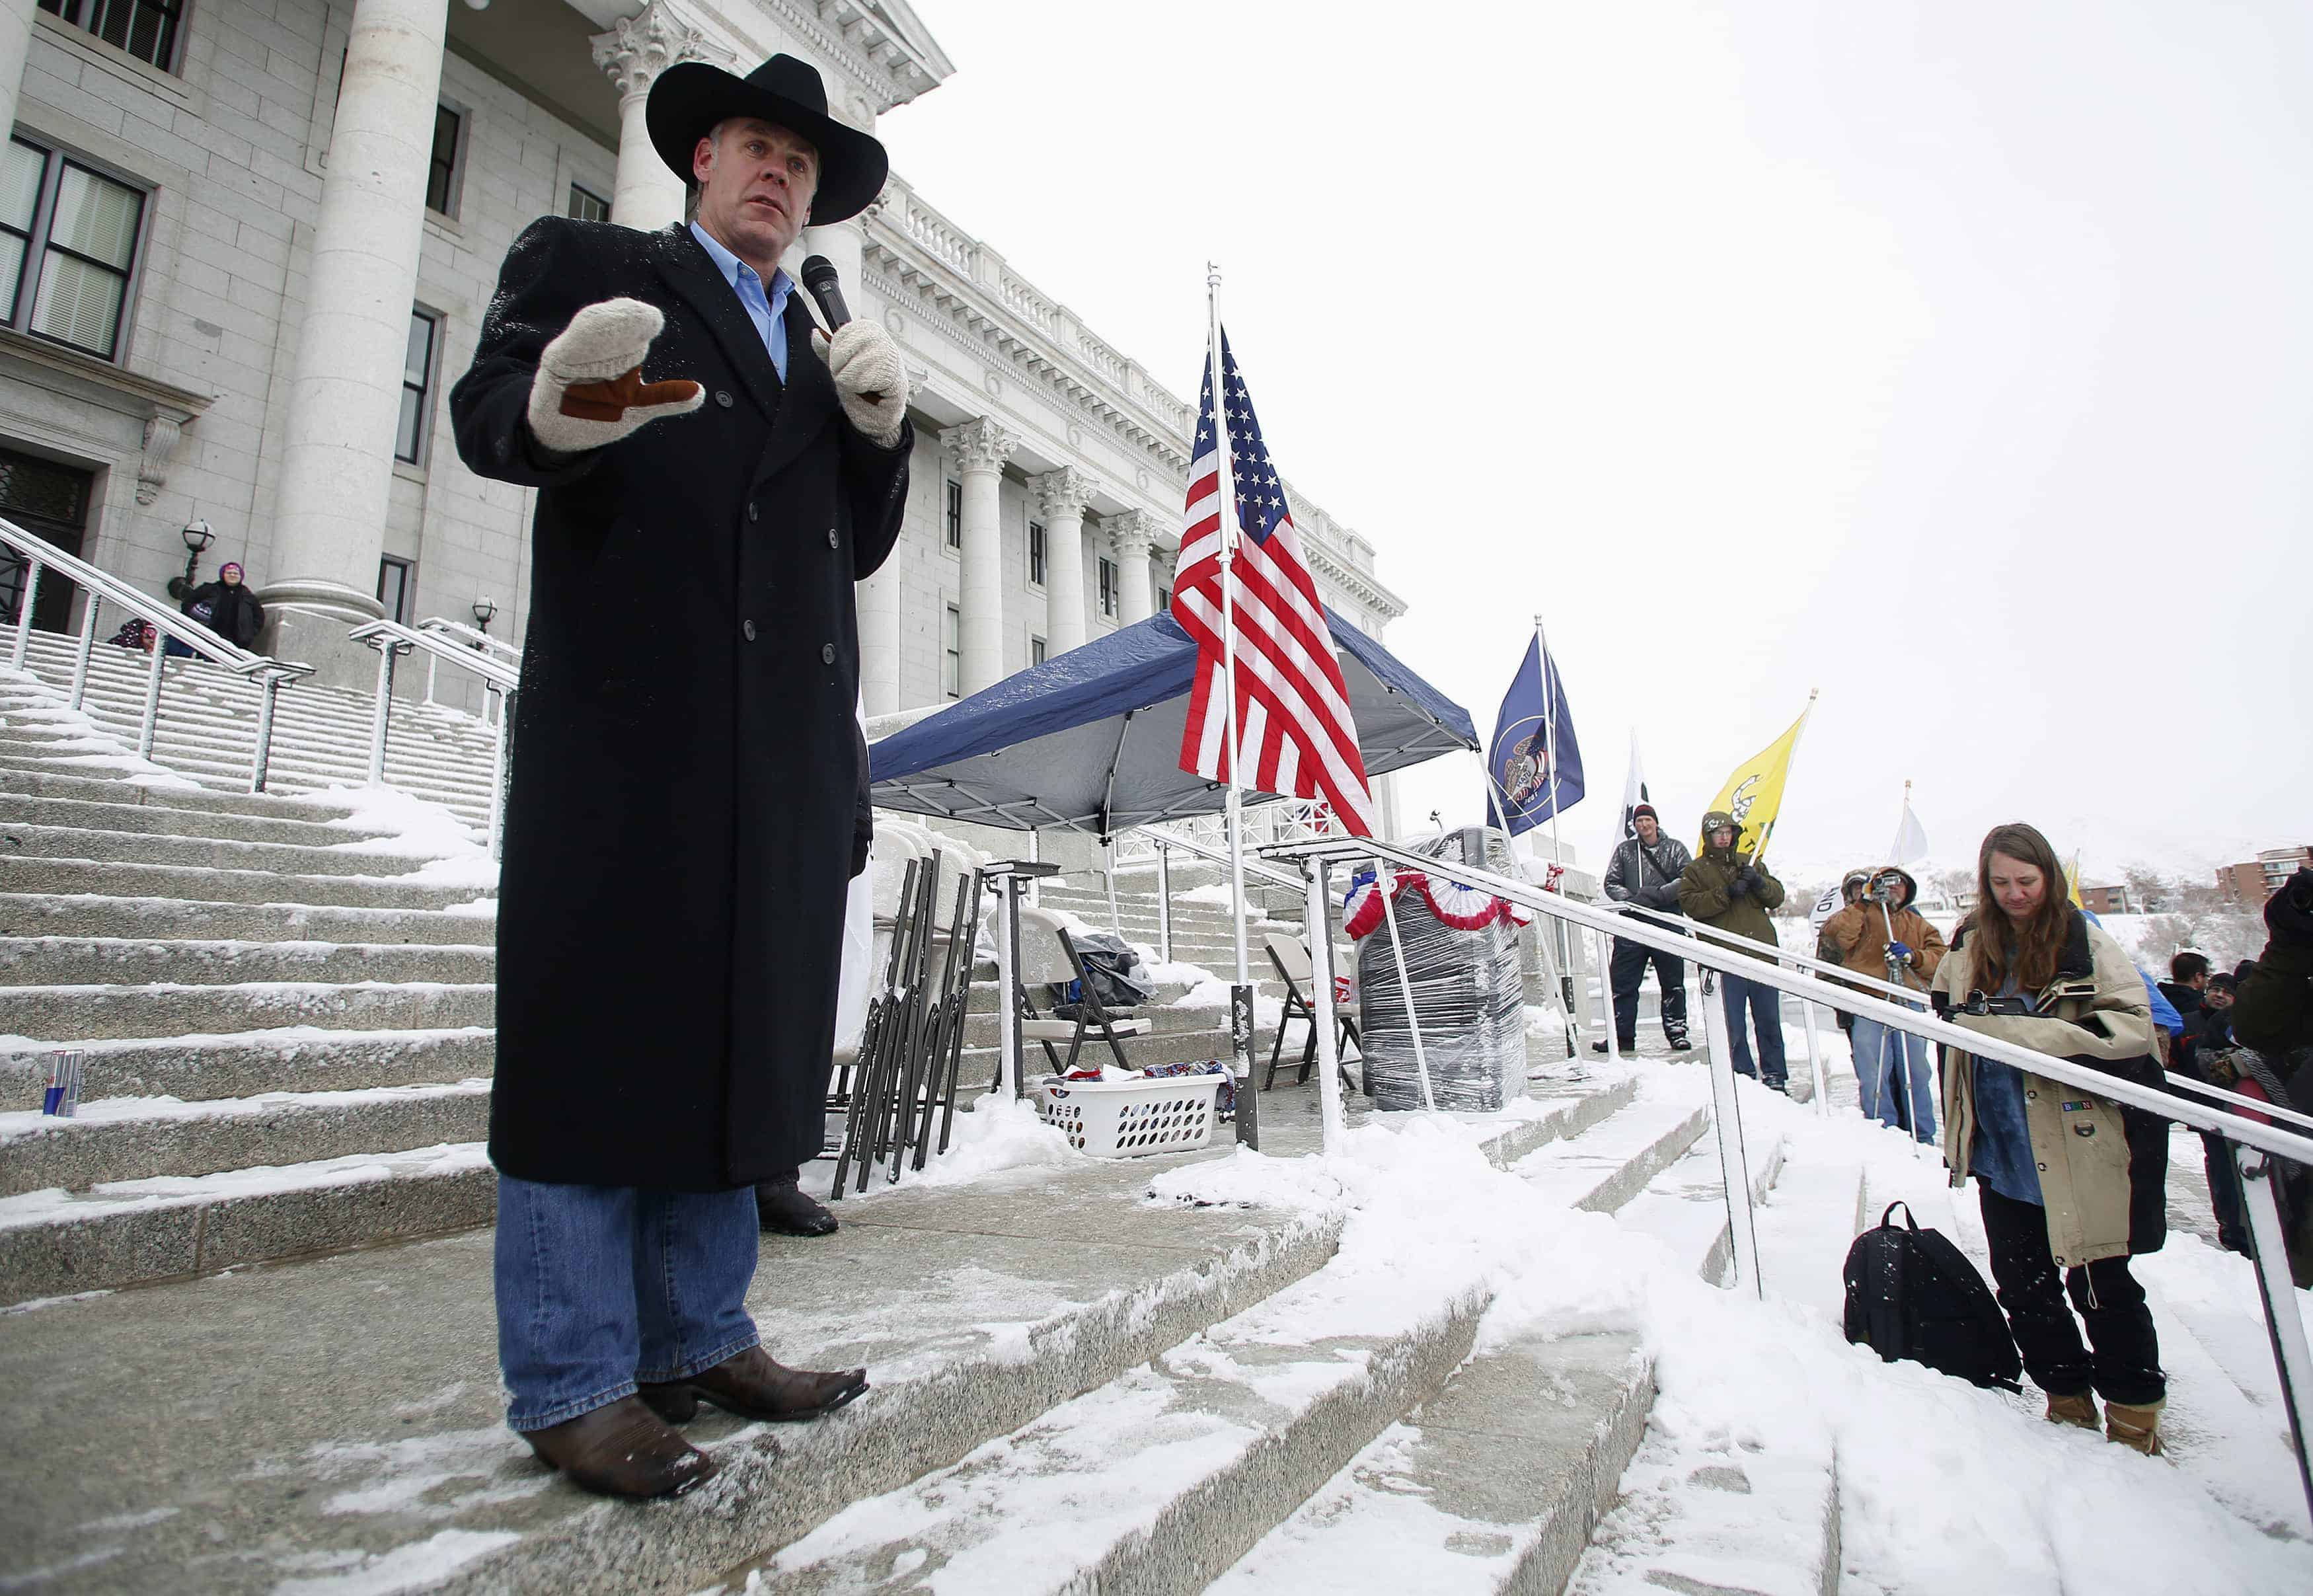 Montana state Senator Ryan Zinke addresses a pro-gun activist rally as part of the National Day of Resistance at the state Capitol in Salt Lake City, Utah